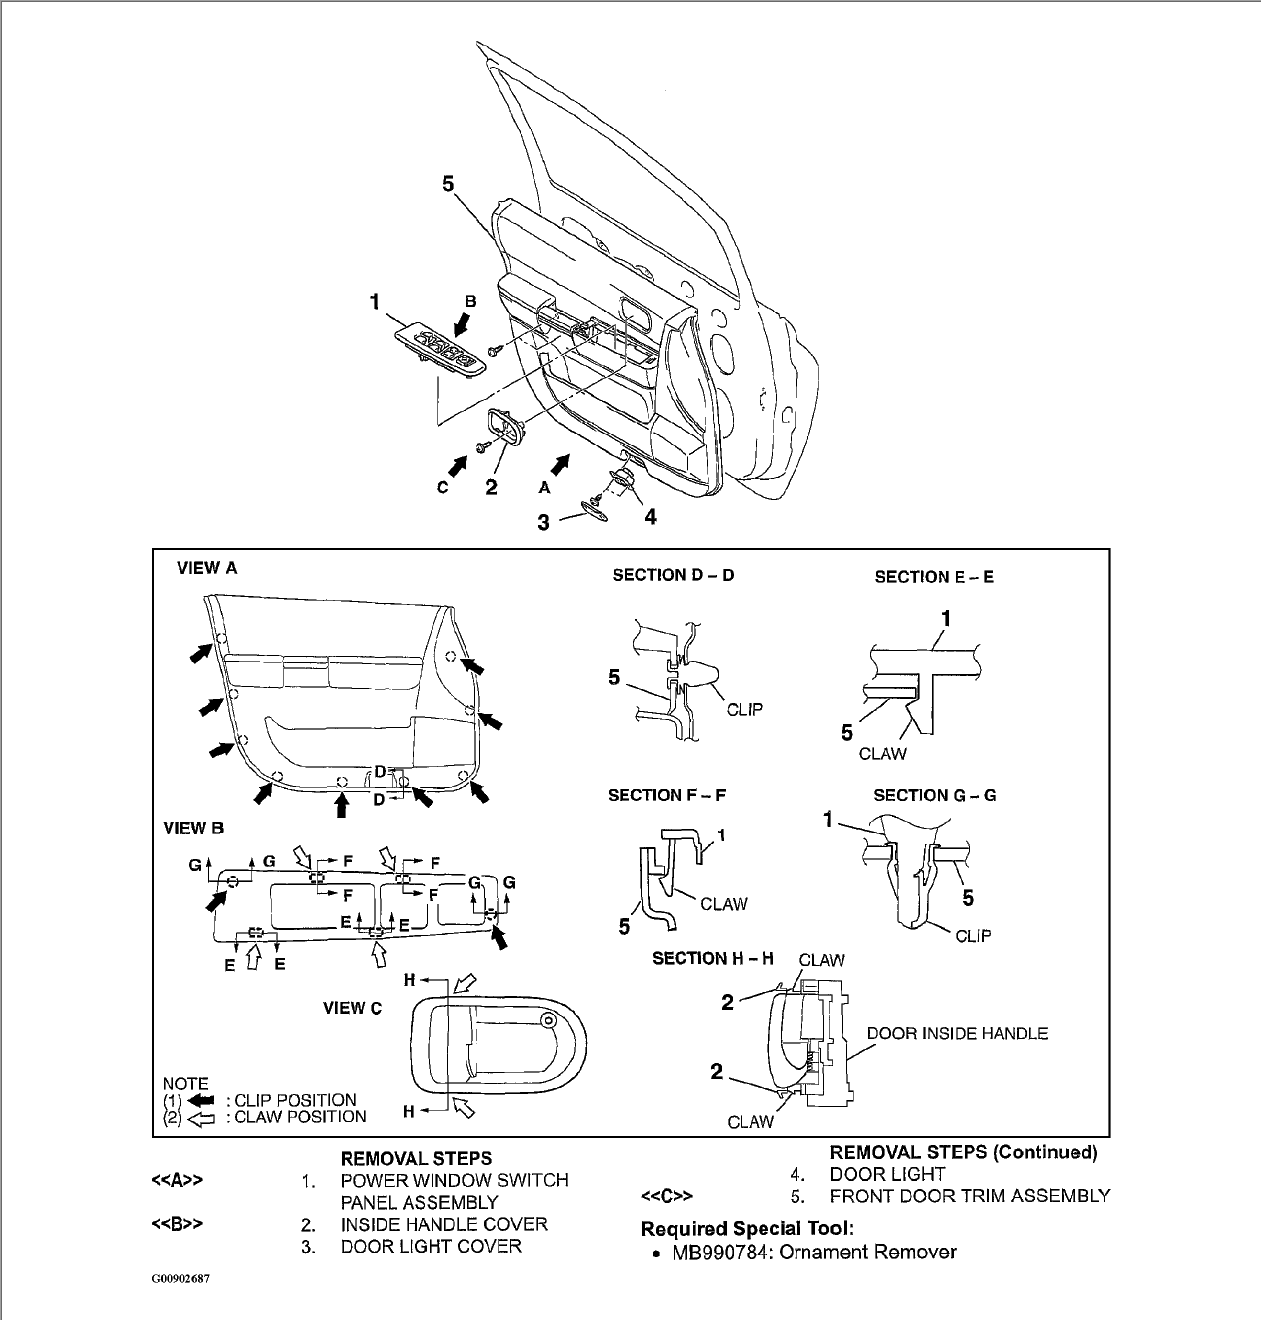 Mitsubishi Door Panel Diagram Electrical Wiring Diagrams Torque Converter How Do You Remove A On 2004 Endeavor Fuse